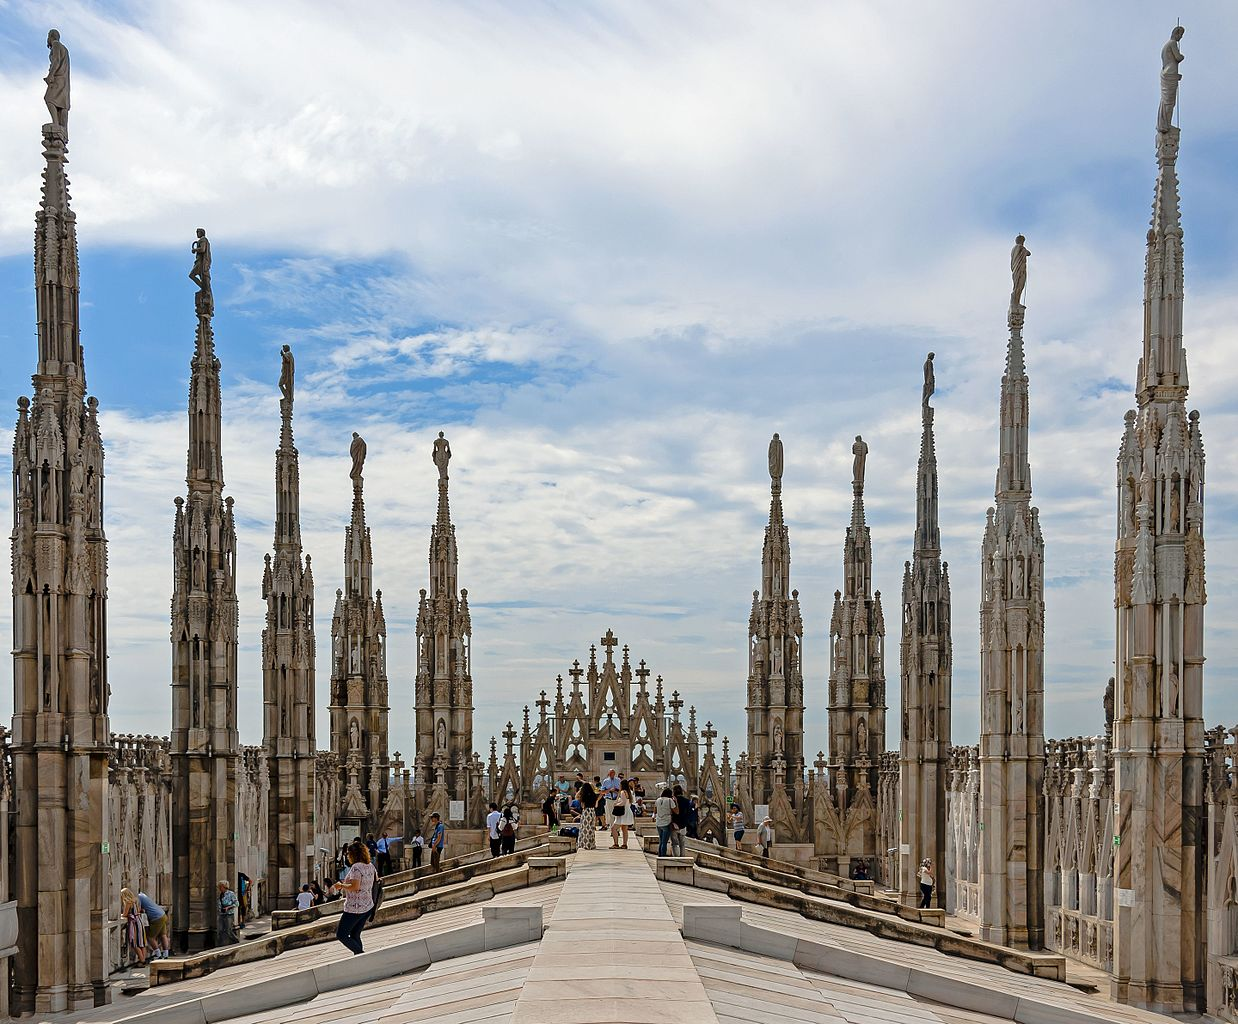 FileView west along Duomo roof Milanjpg  Wikimedia Commons